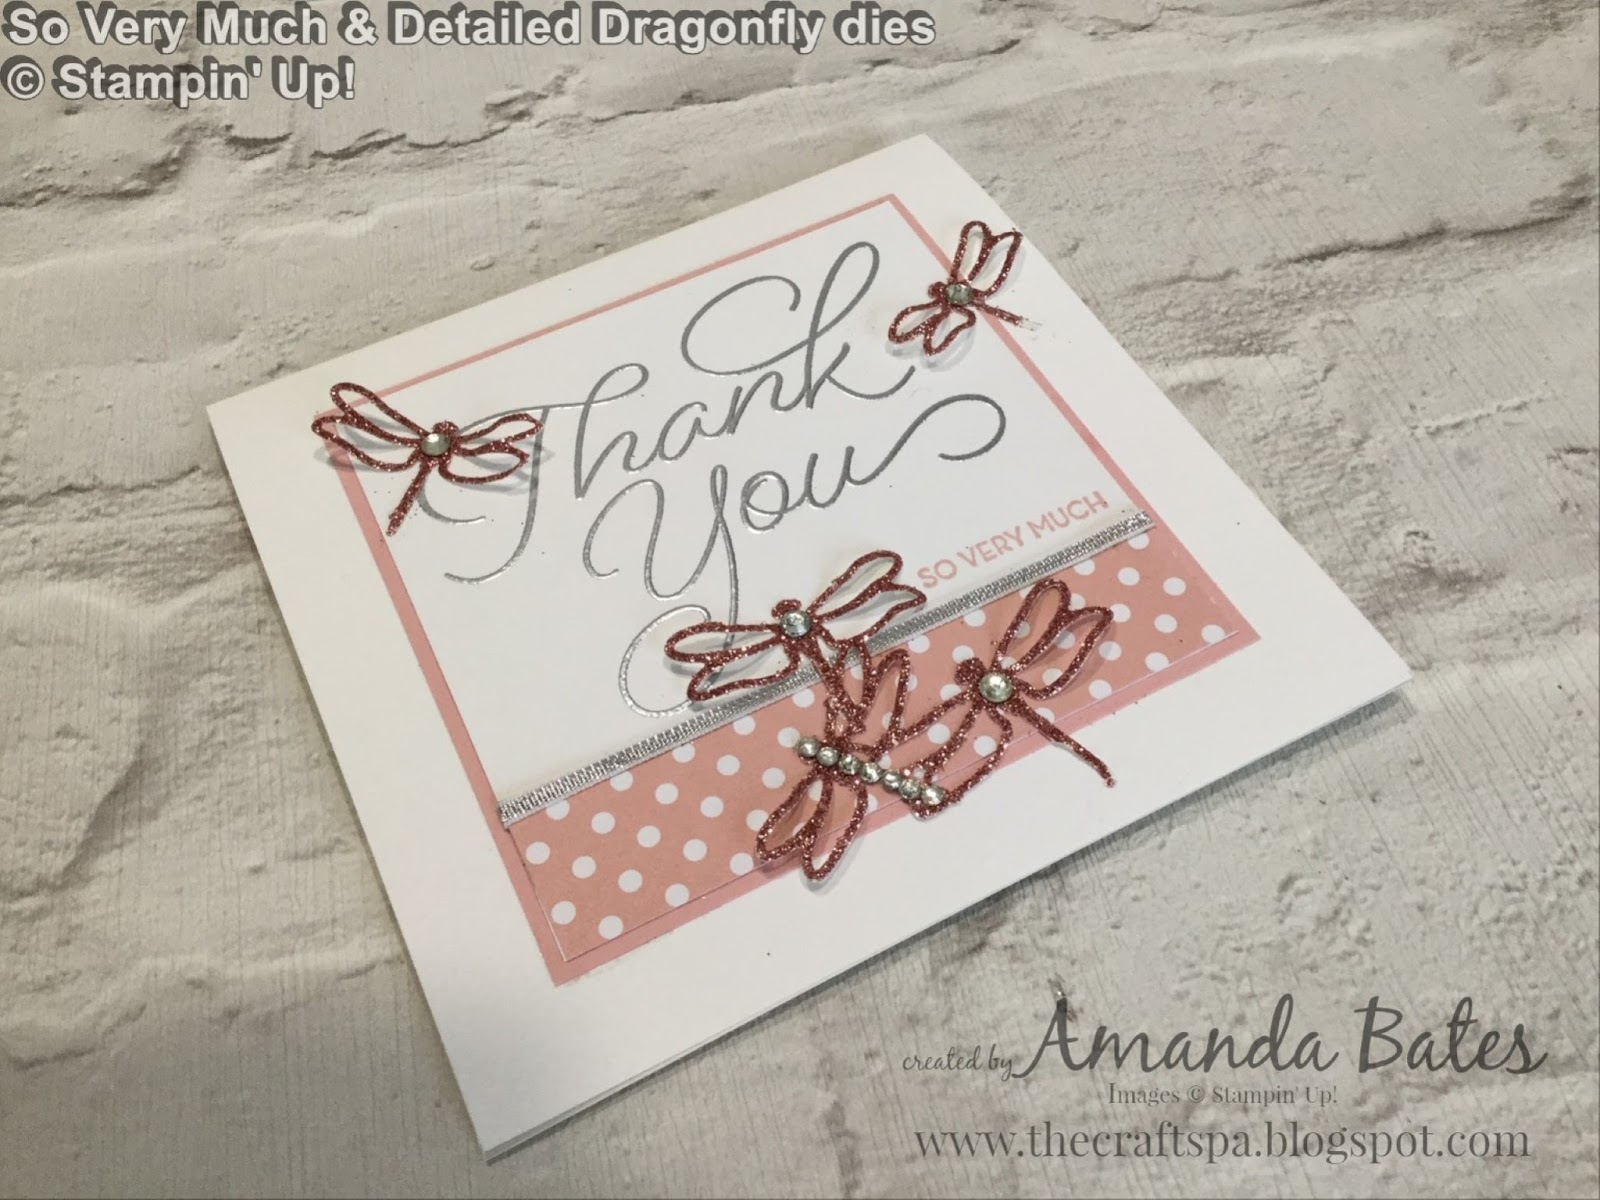 The craft spa stampin up uk independent demonstrator dragonflies cut from blushing bride glimmer paper using the detailed dragonflies dies and then 2 top and bottom carefully scissor cut off the set of 5 jeuxipadfo Gallery